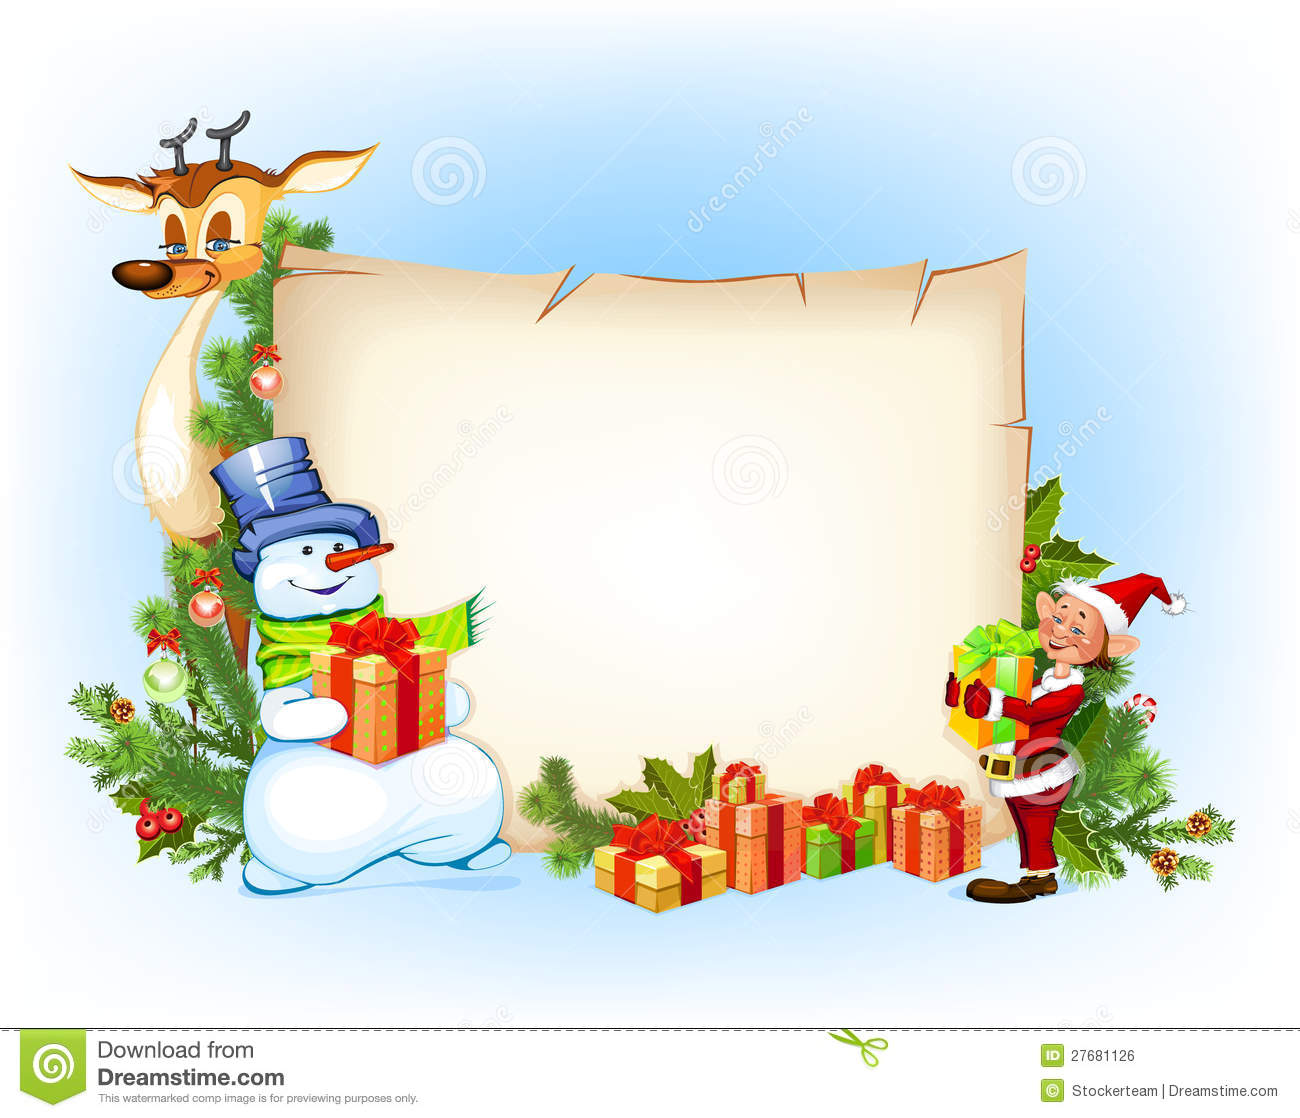 Christmas Snowman Reindeer And An Elf Royalty Free Stock